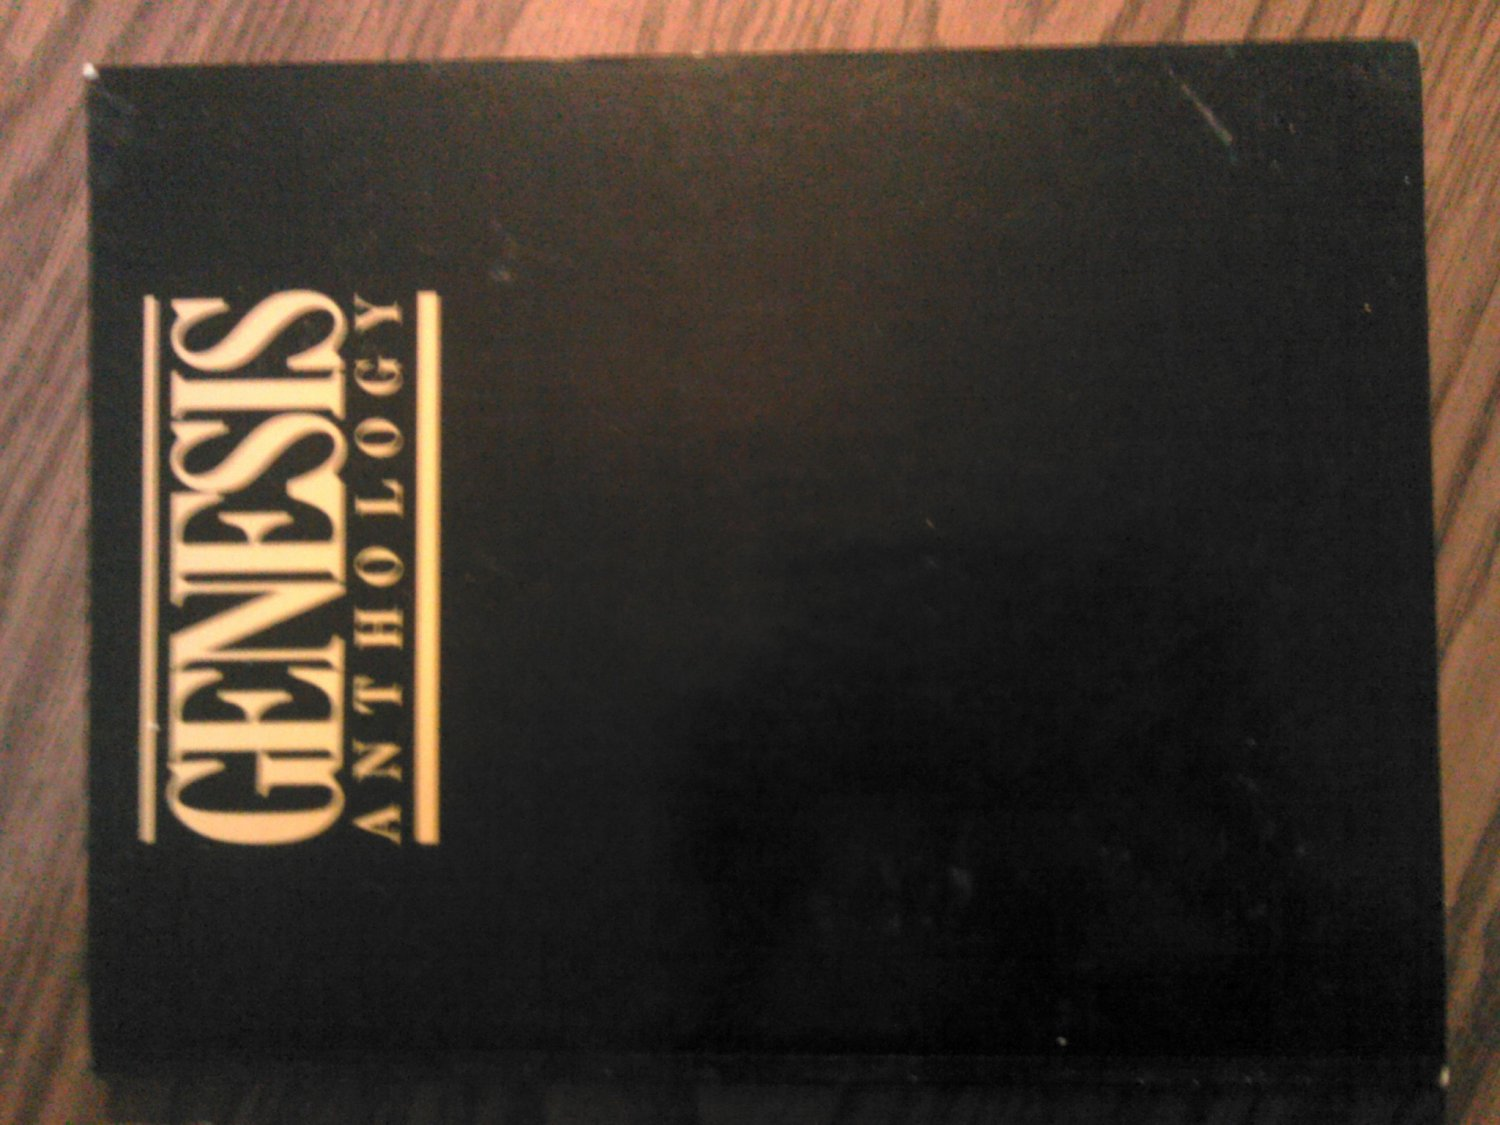 GENESIS SONGBOOK Anthology phil collins song book NEW SALE